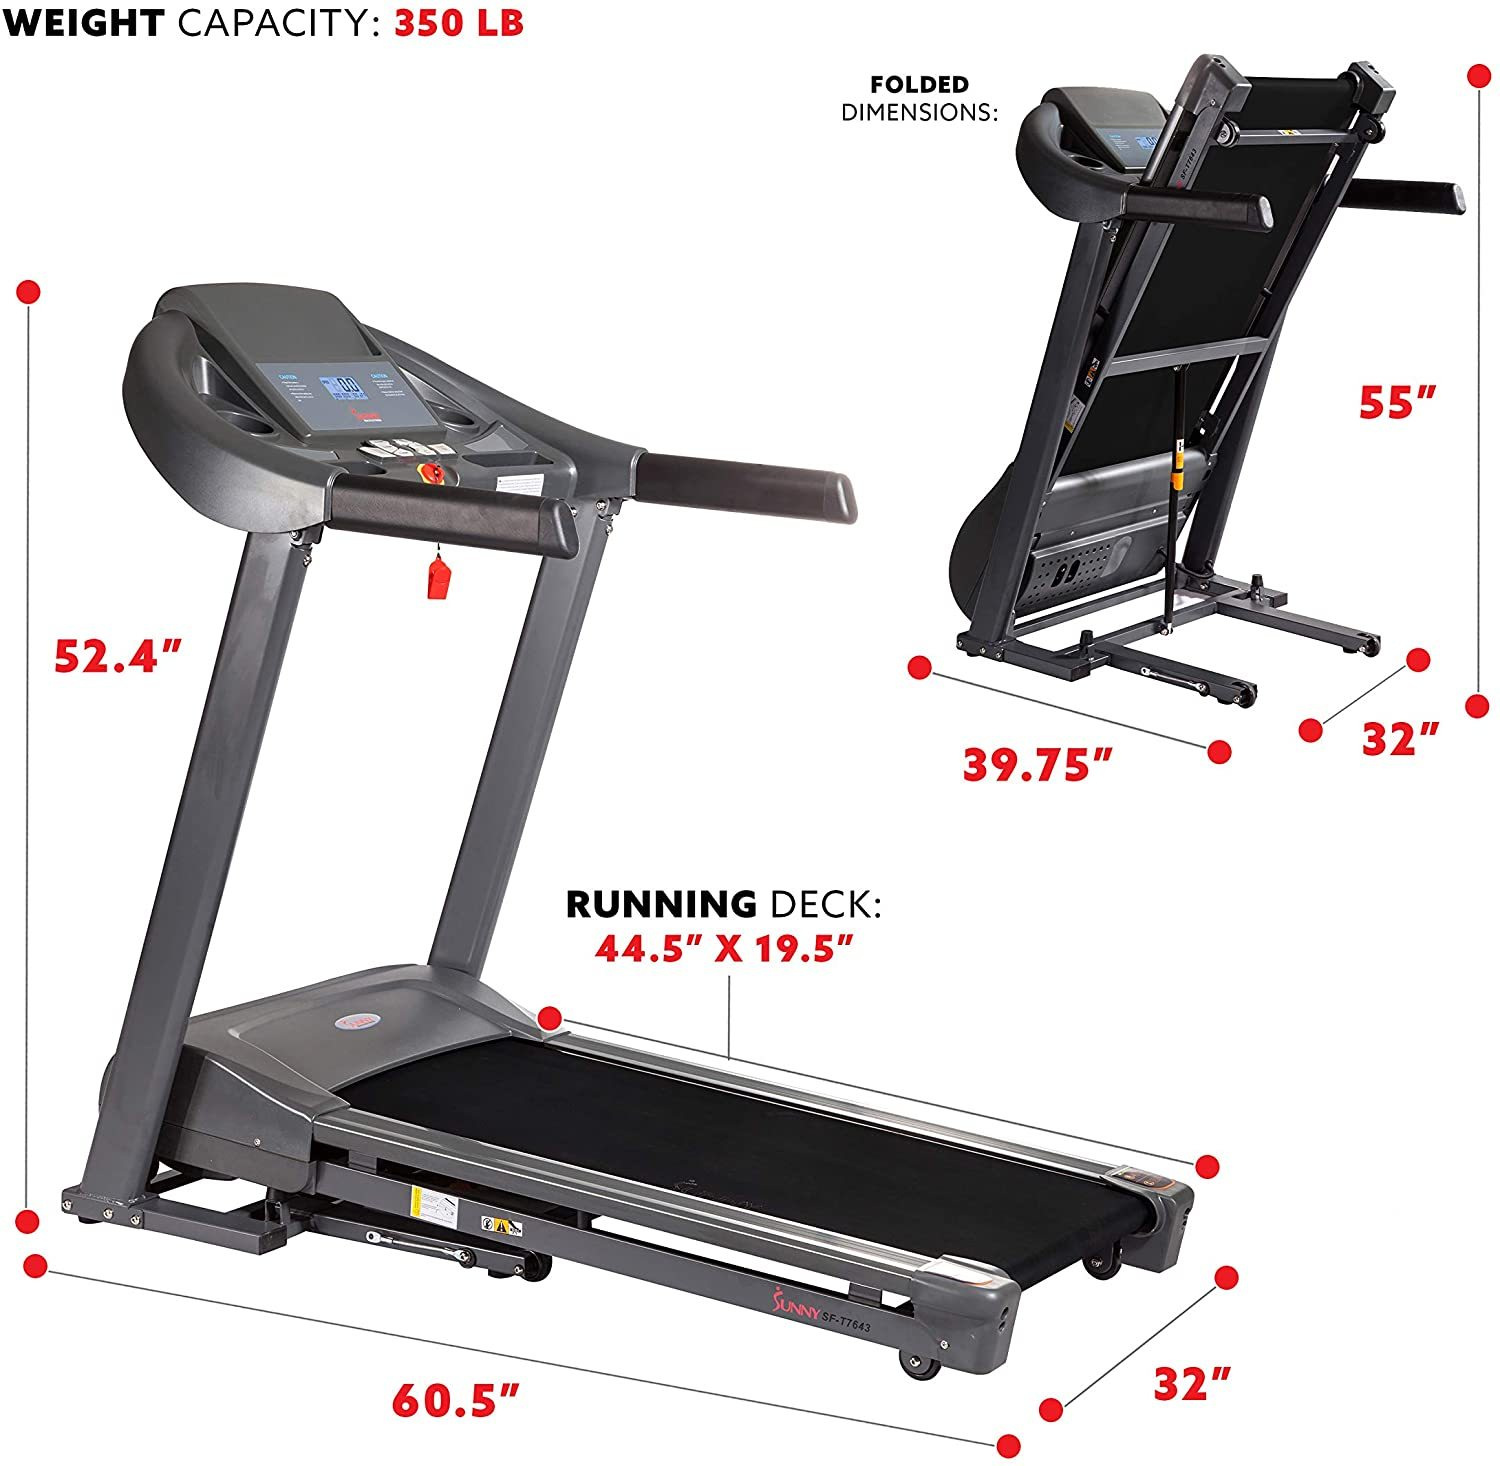 T7643 Heavy Duty Walking Treadmill with 350 lb High Weight Capacity, Wide Walking Area and Folding for Storage